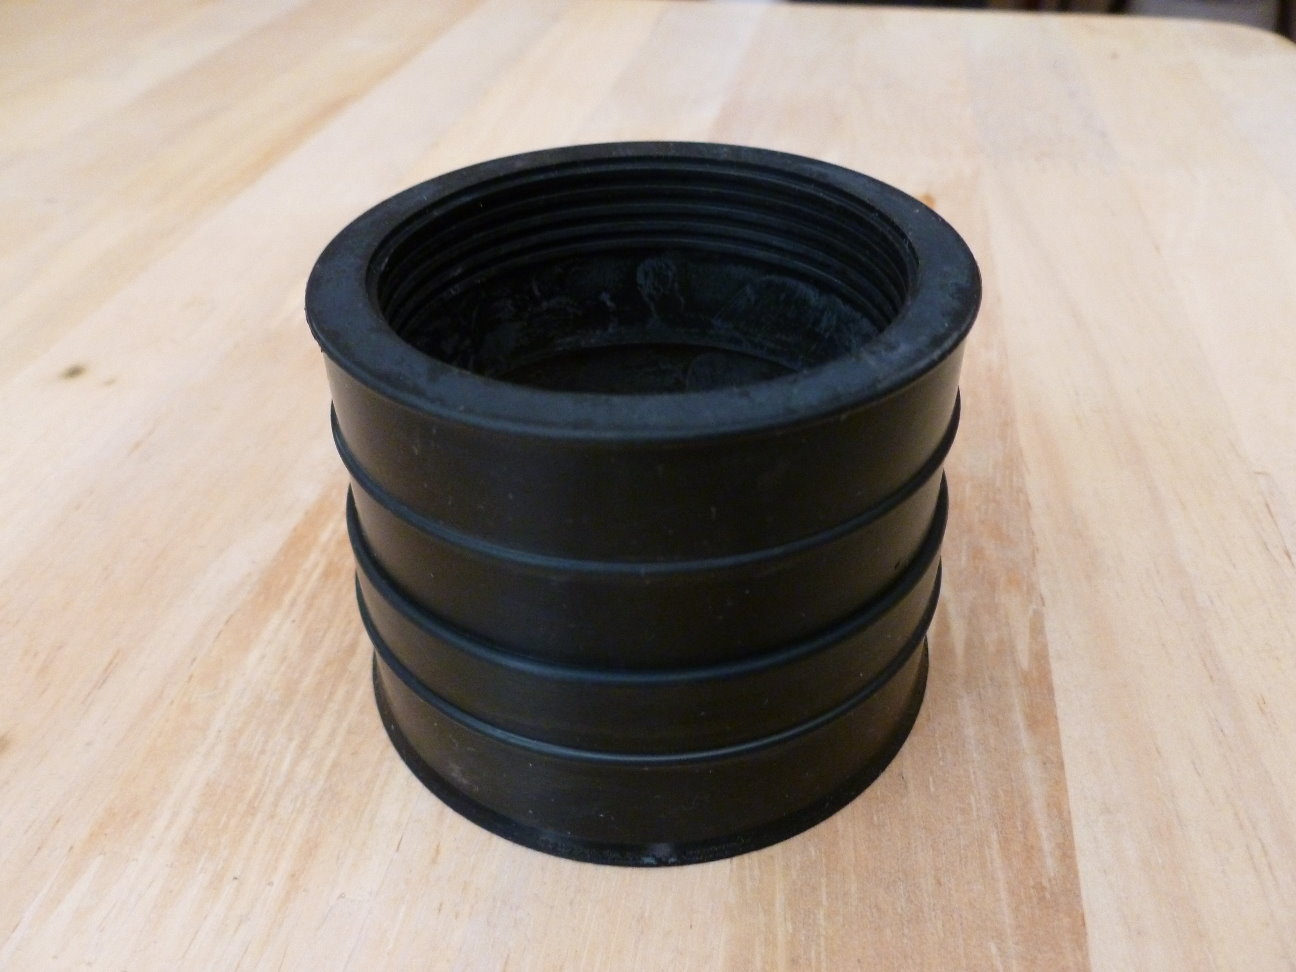 Plastic Part Amp Rubber Adapter Megapower